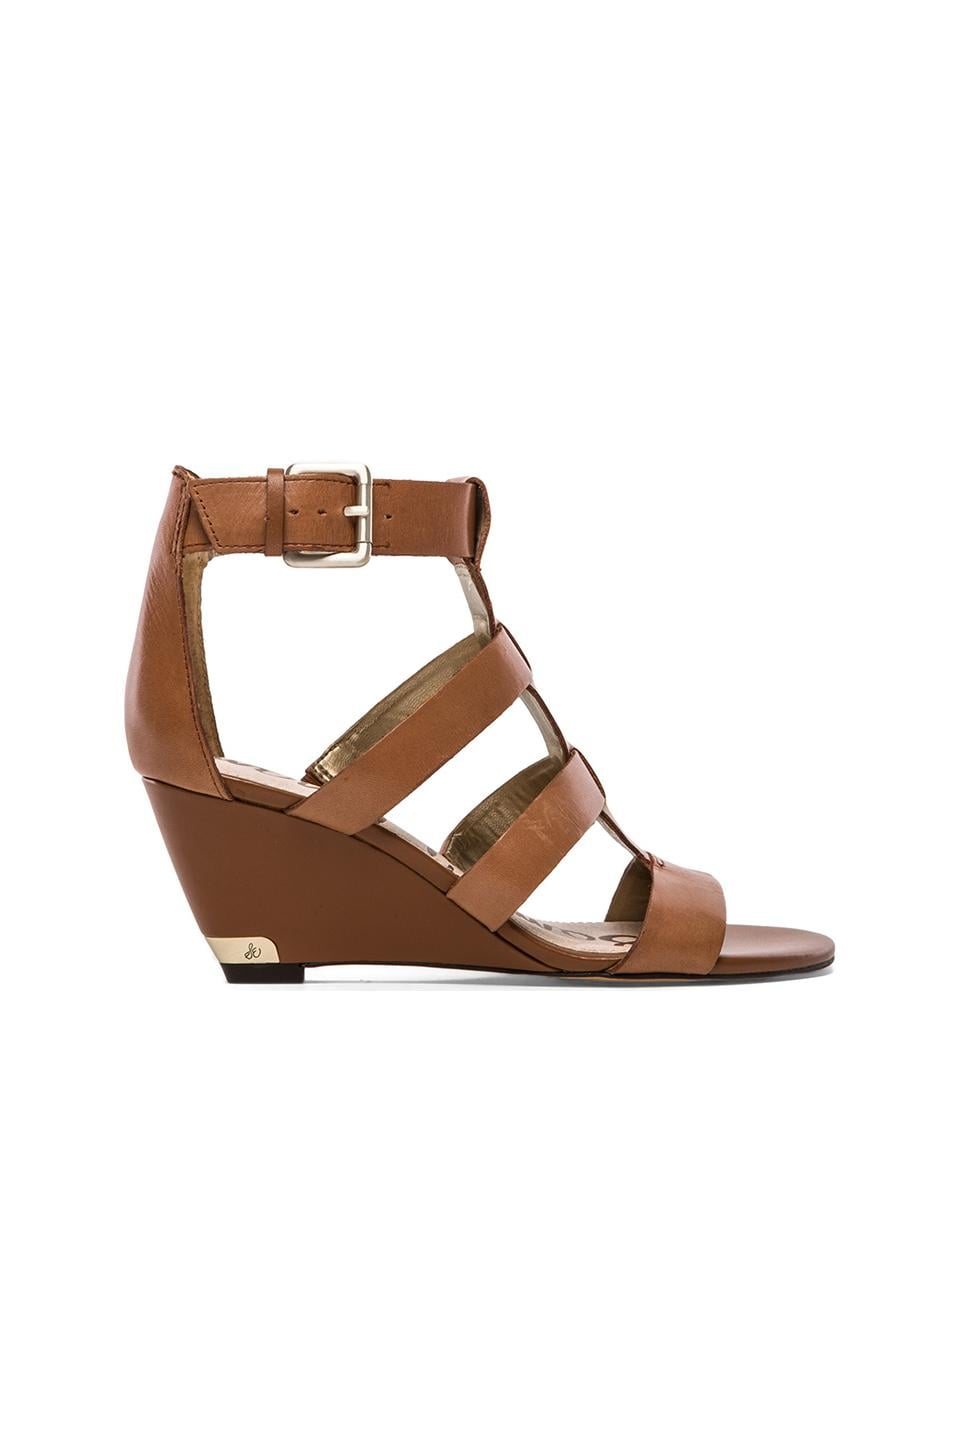 Sam Edelman Sabrina Wedge in Saddle